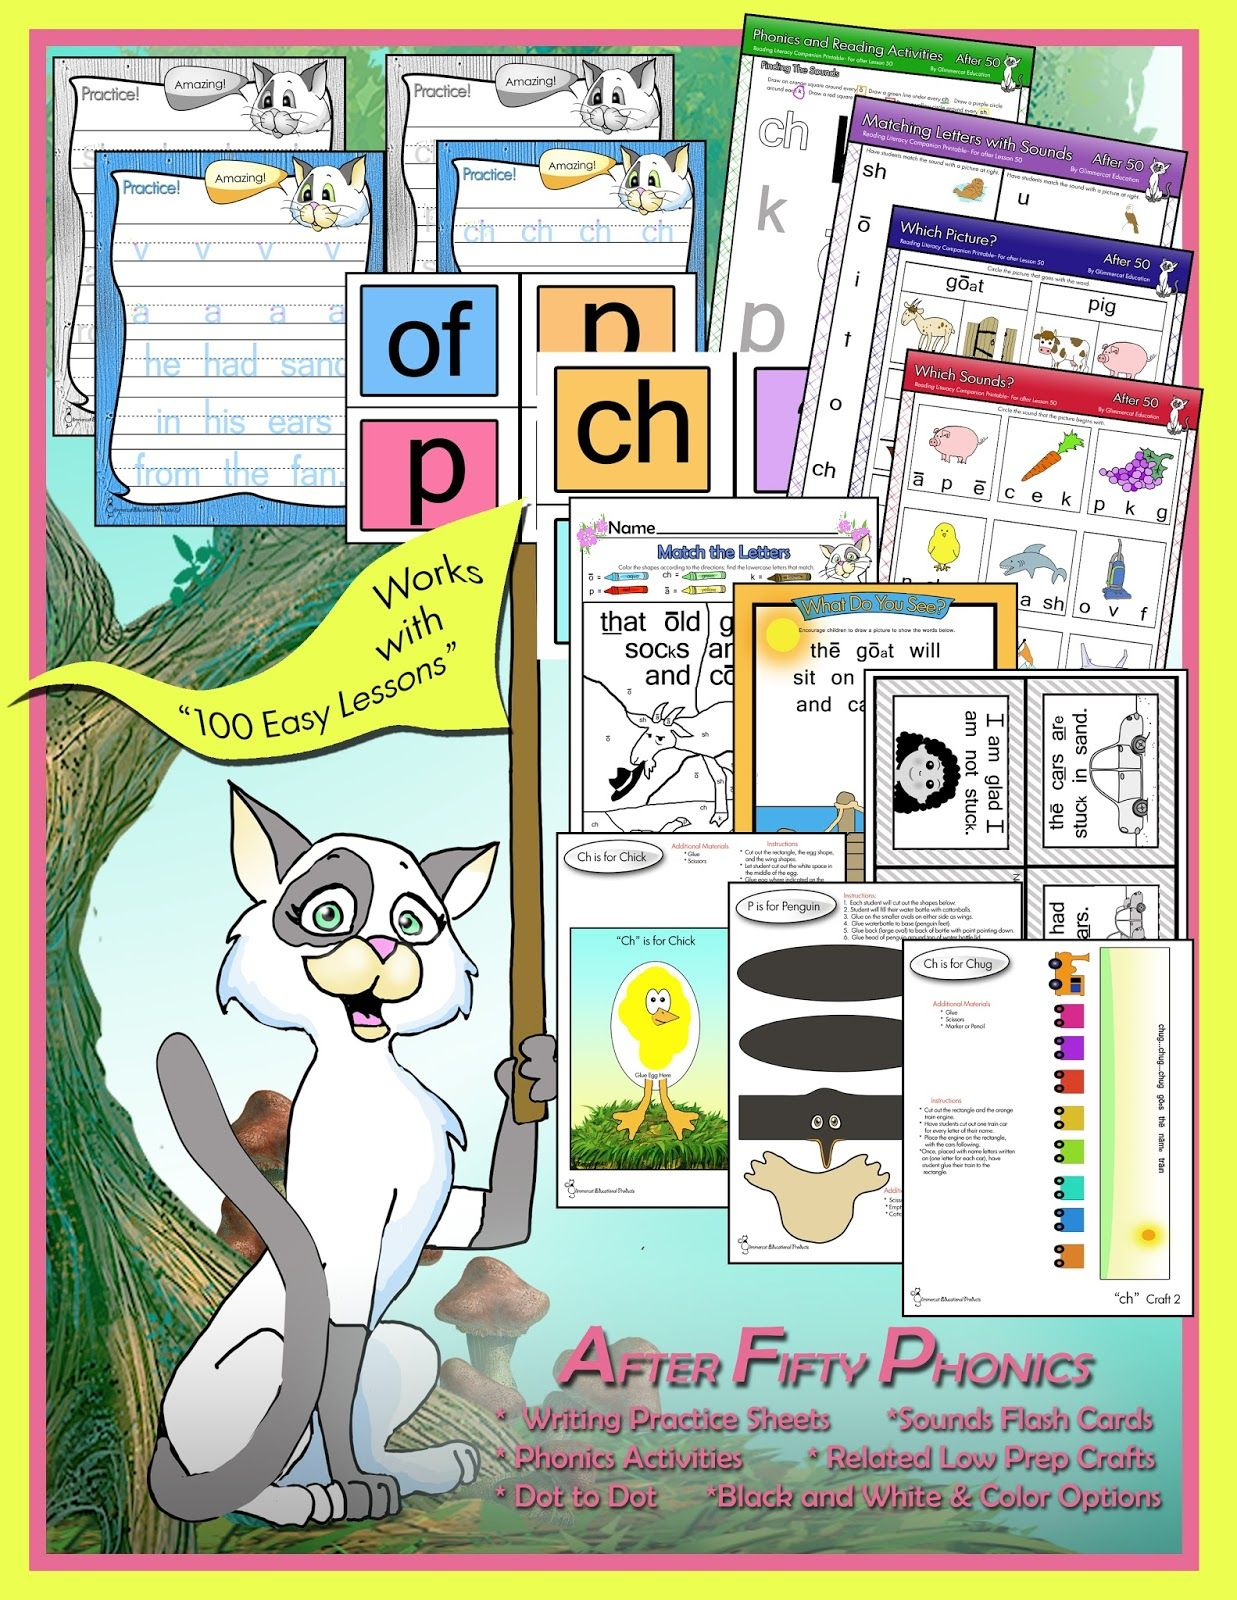 worksheet Teach Your Child To Read In 100 Easy Lessons Worksheets supplemental worksheets and crafts from glimmercat education for offering phonics printables to supplement teach your child read in 100 easy lessons